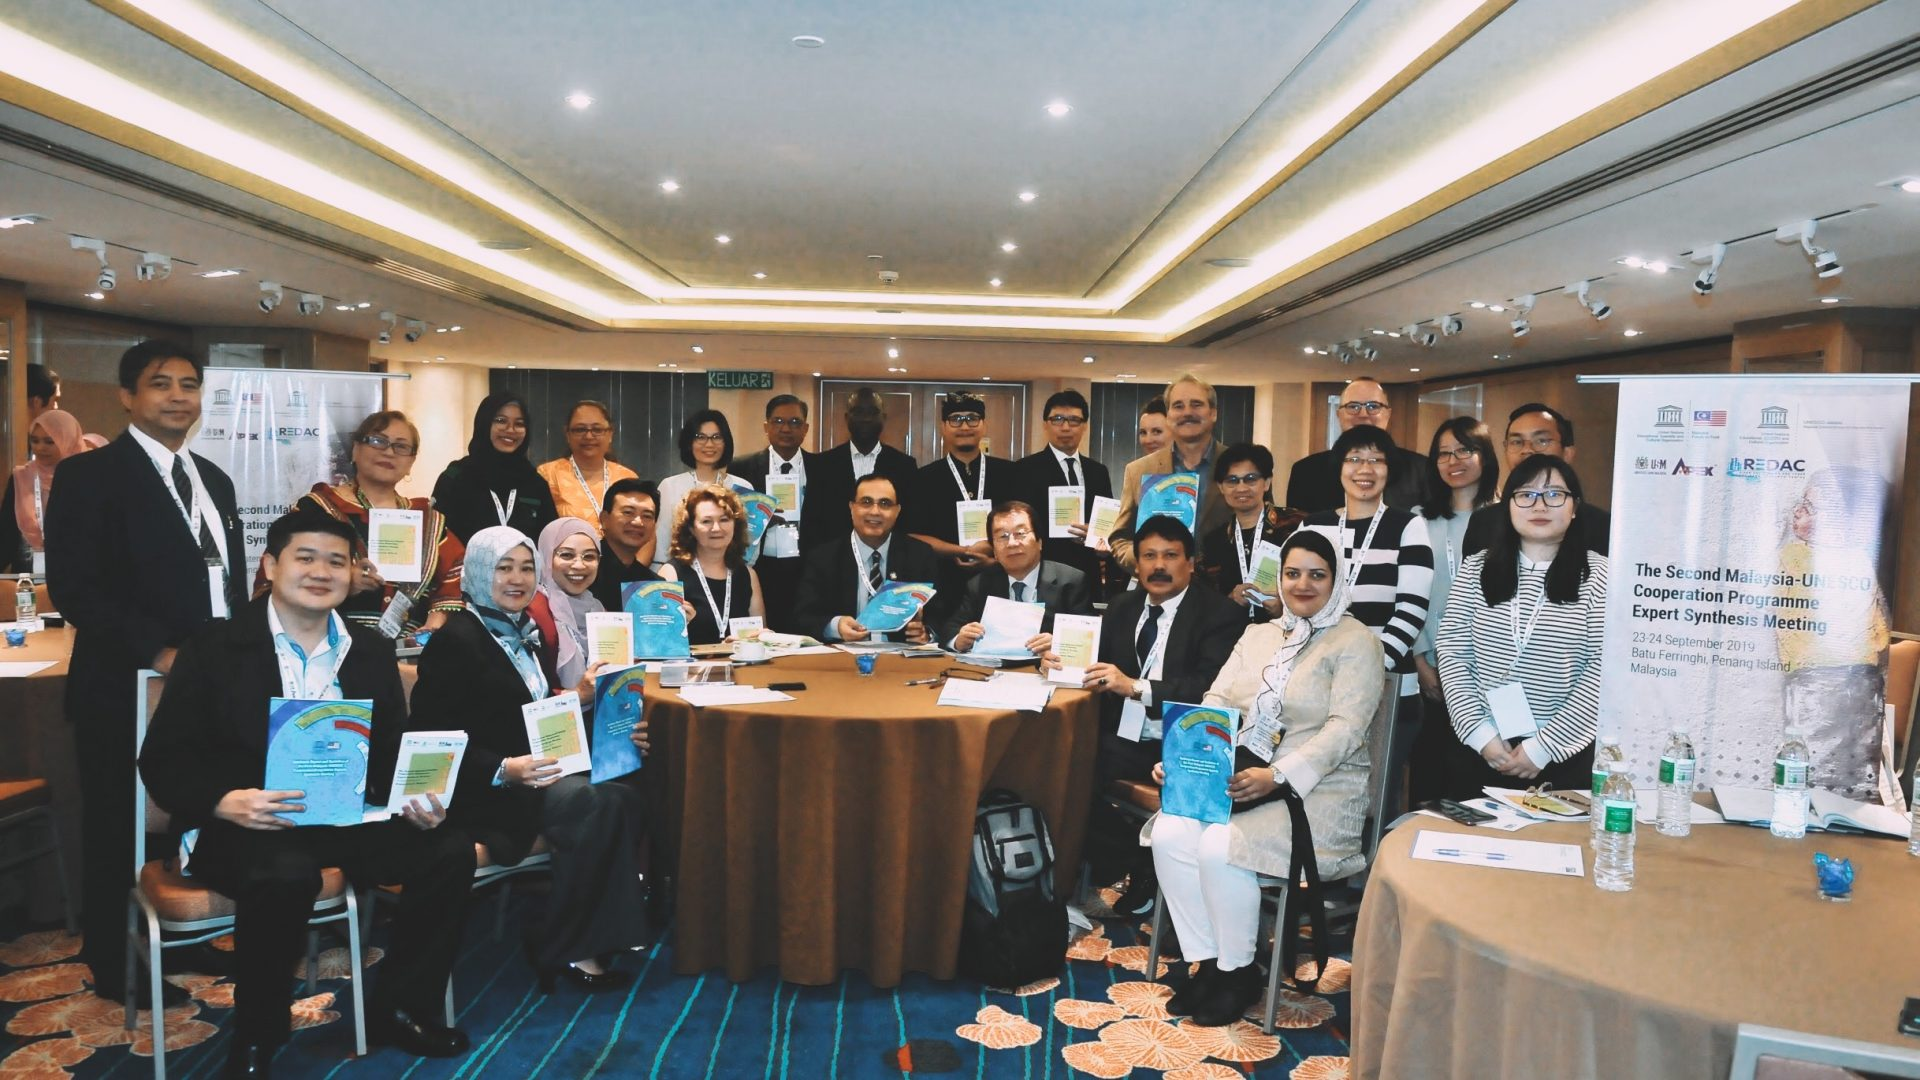 The Second Malaysia-UNESCO Cooperation Programme (MUCP) Expert Synthesis Meeting